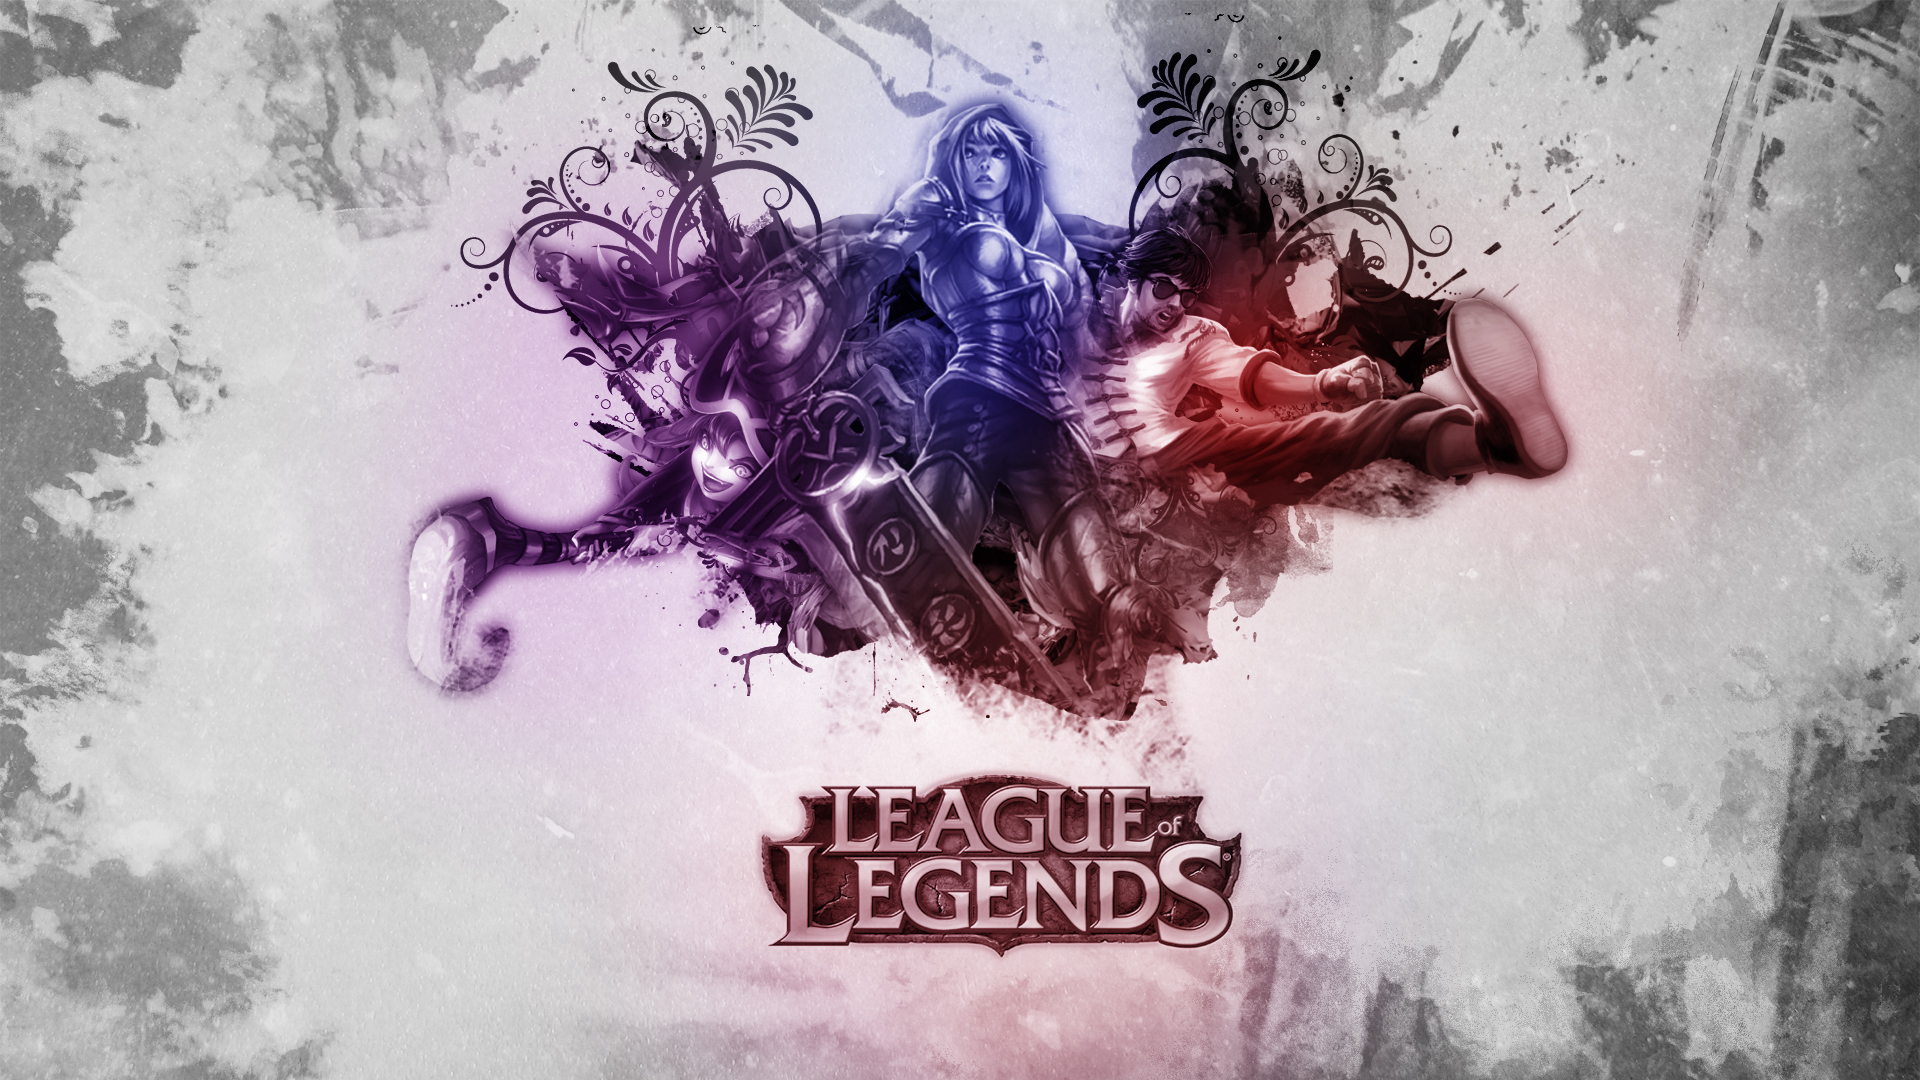 League of Legends Wallpaper by SMILYFACEvirus League of Legends Wallpaper by SMILYFACEvirus